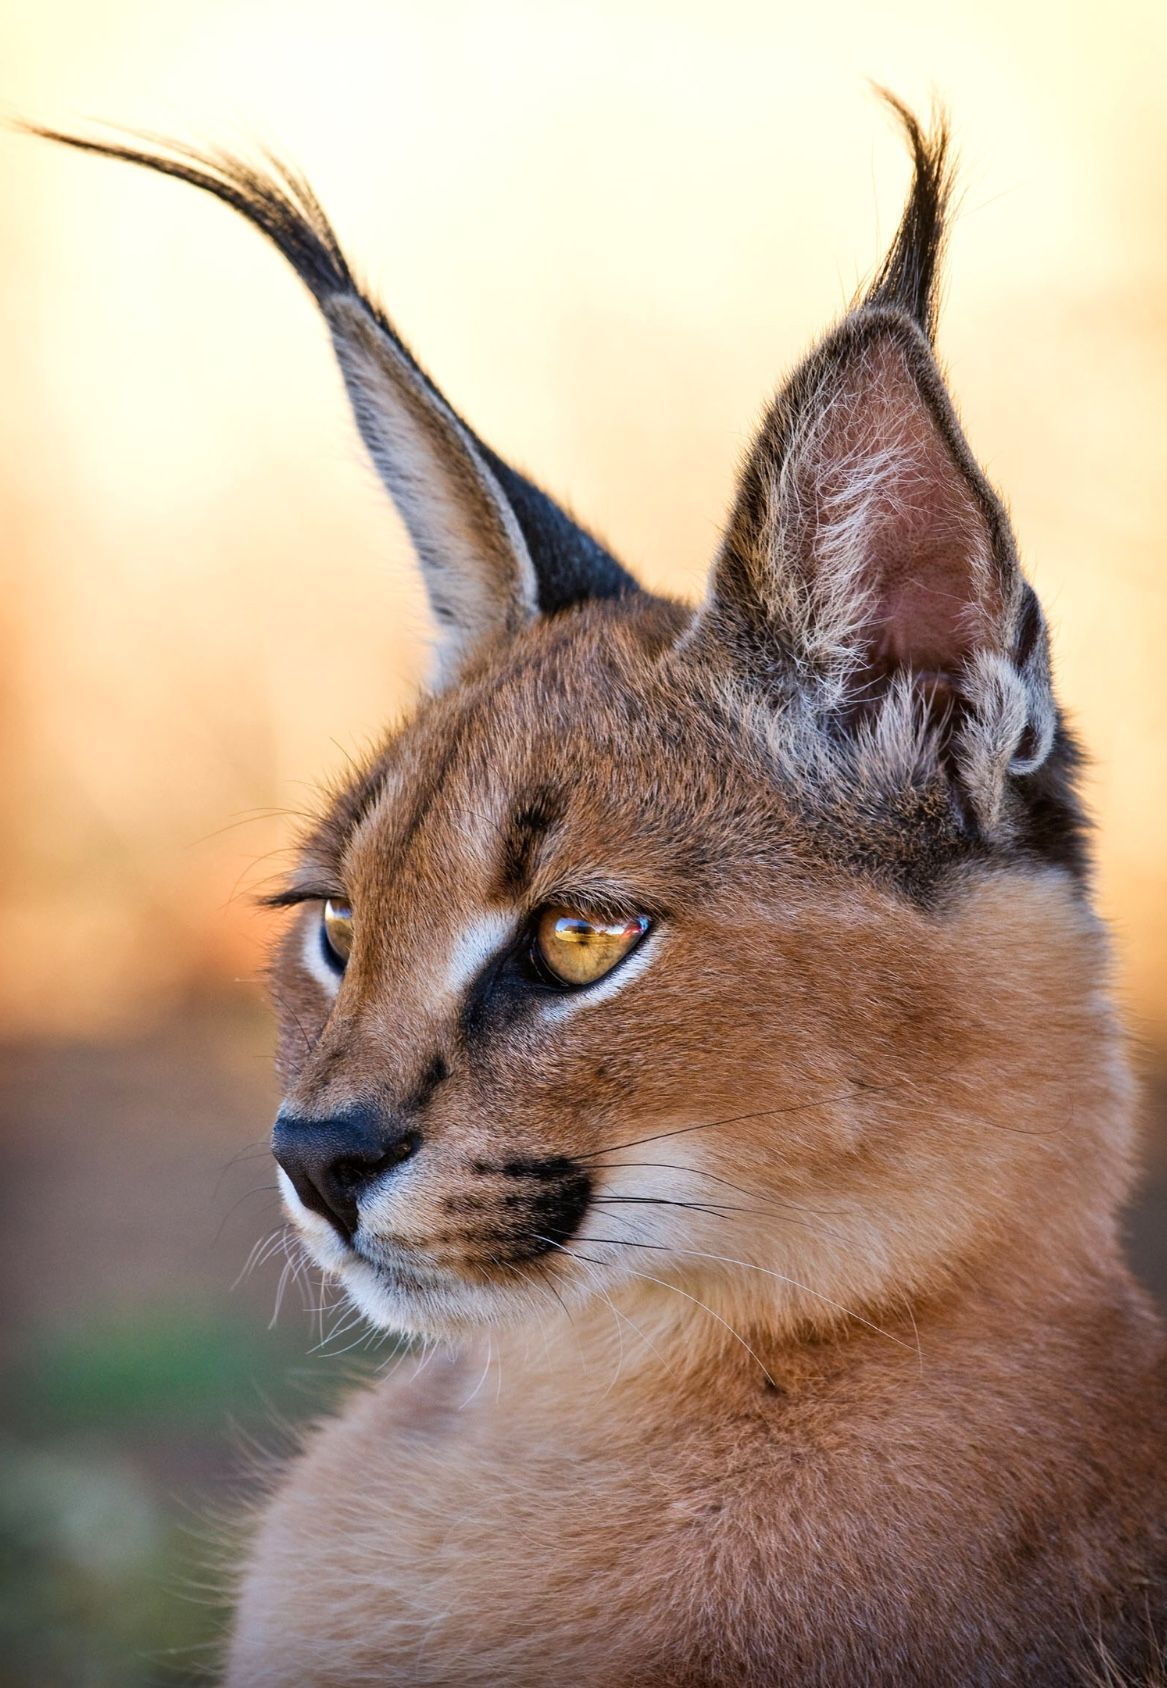 IP_LPI_NAMIBIA_04 middleeast in 2020 Caracal cat, Wild